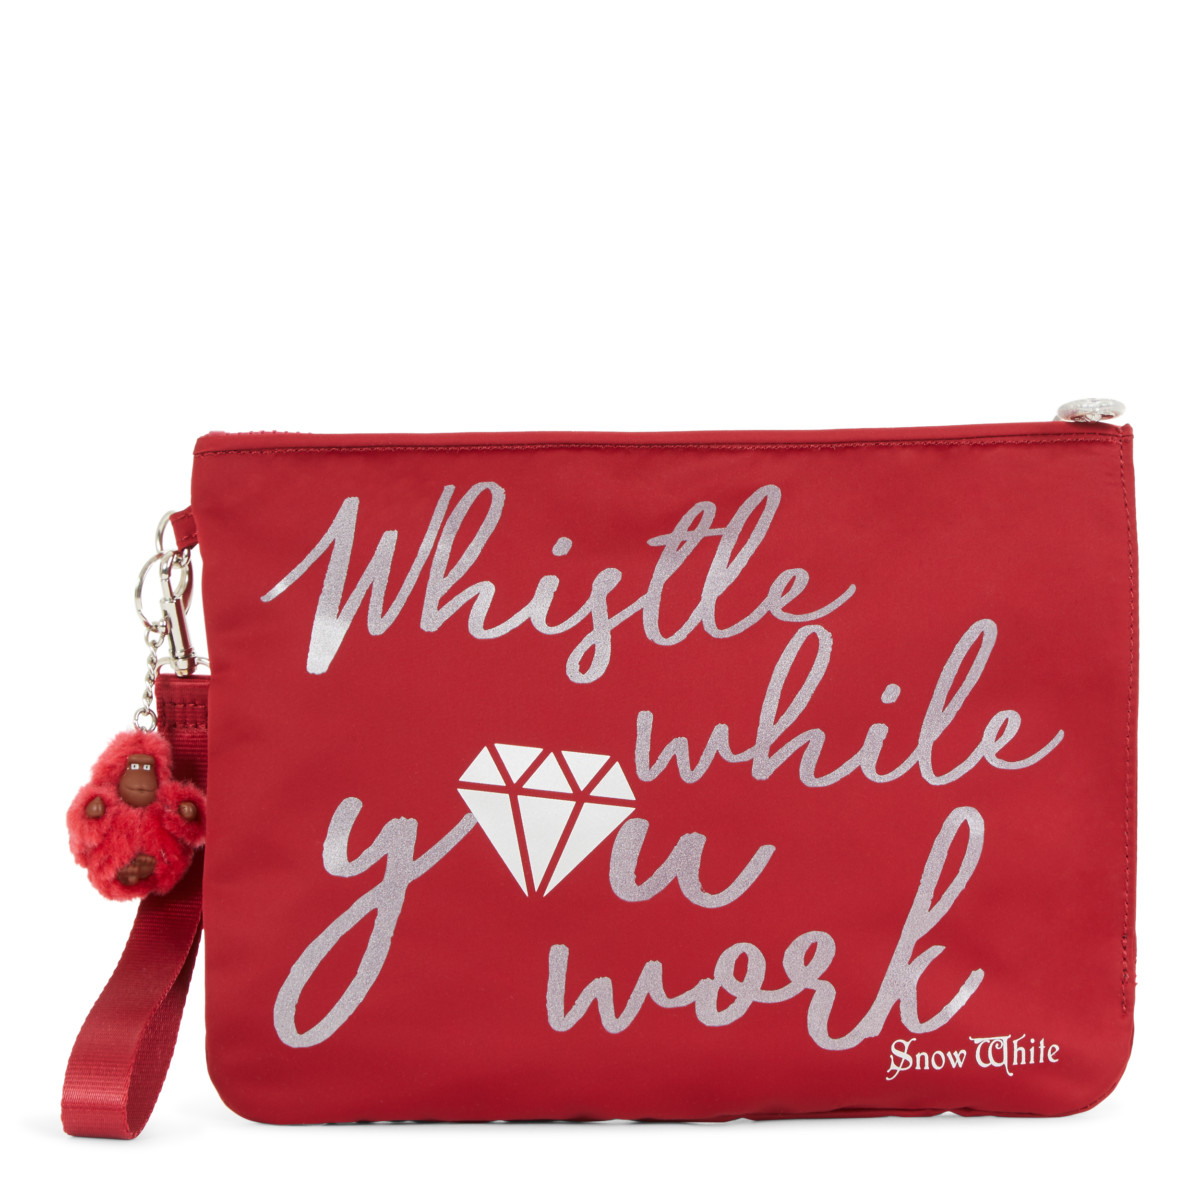 Kipling and Disney Snow White Collection! 4